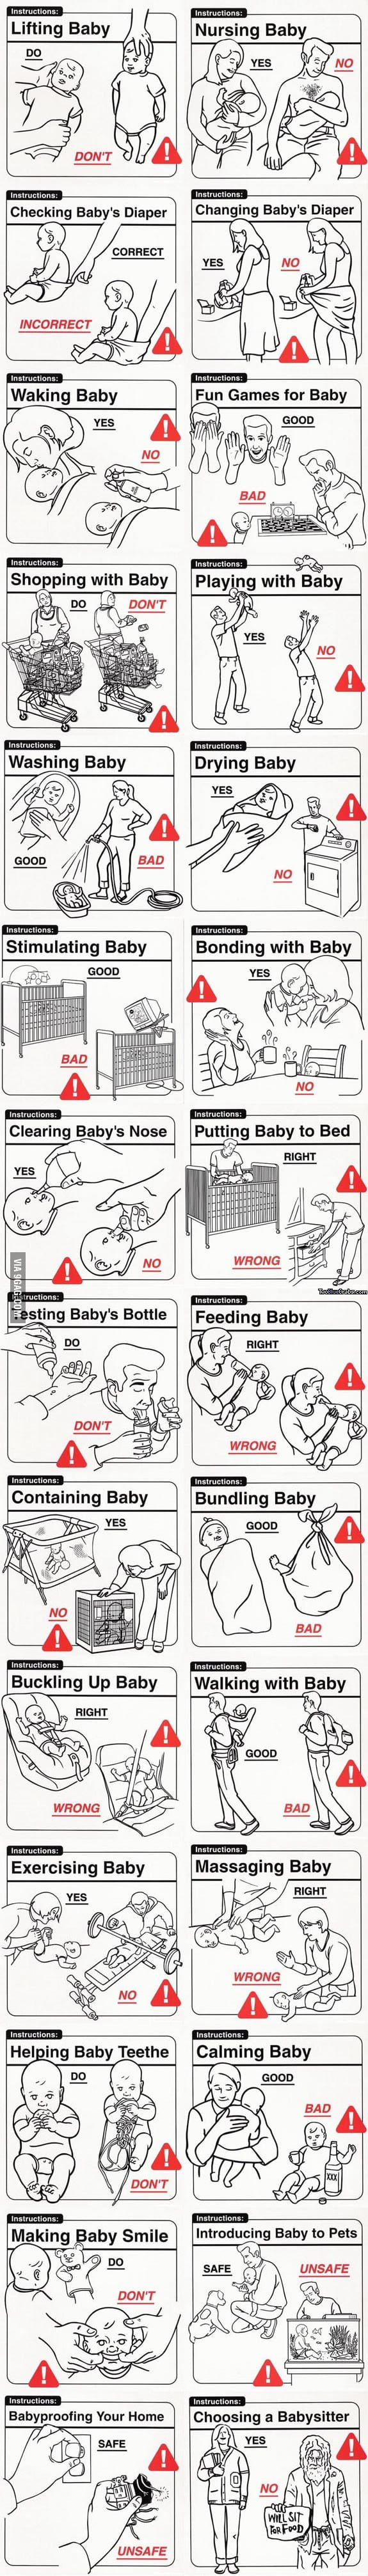 Pin On Babies Manual Guide